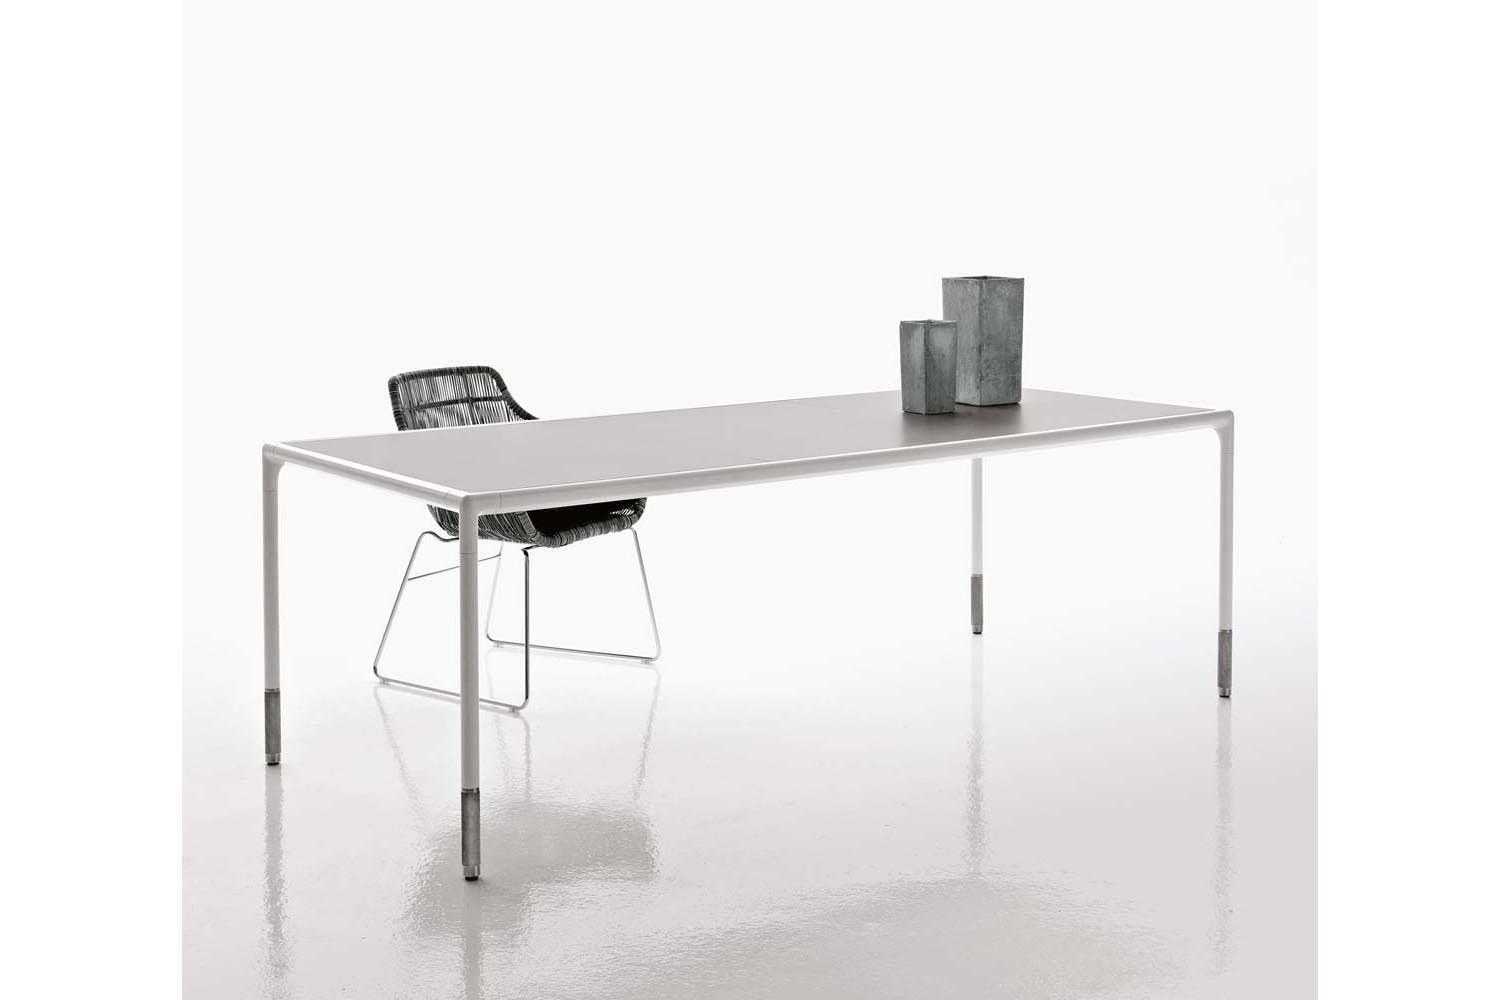 Springtime Table by Jean-Marie Massaud for B&B Italia